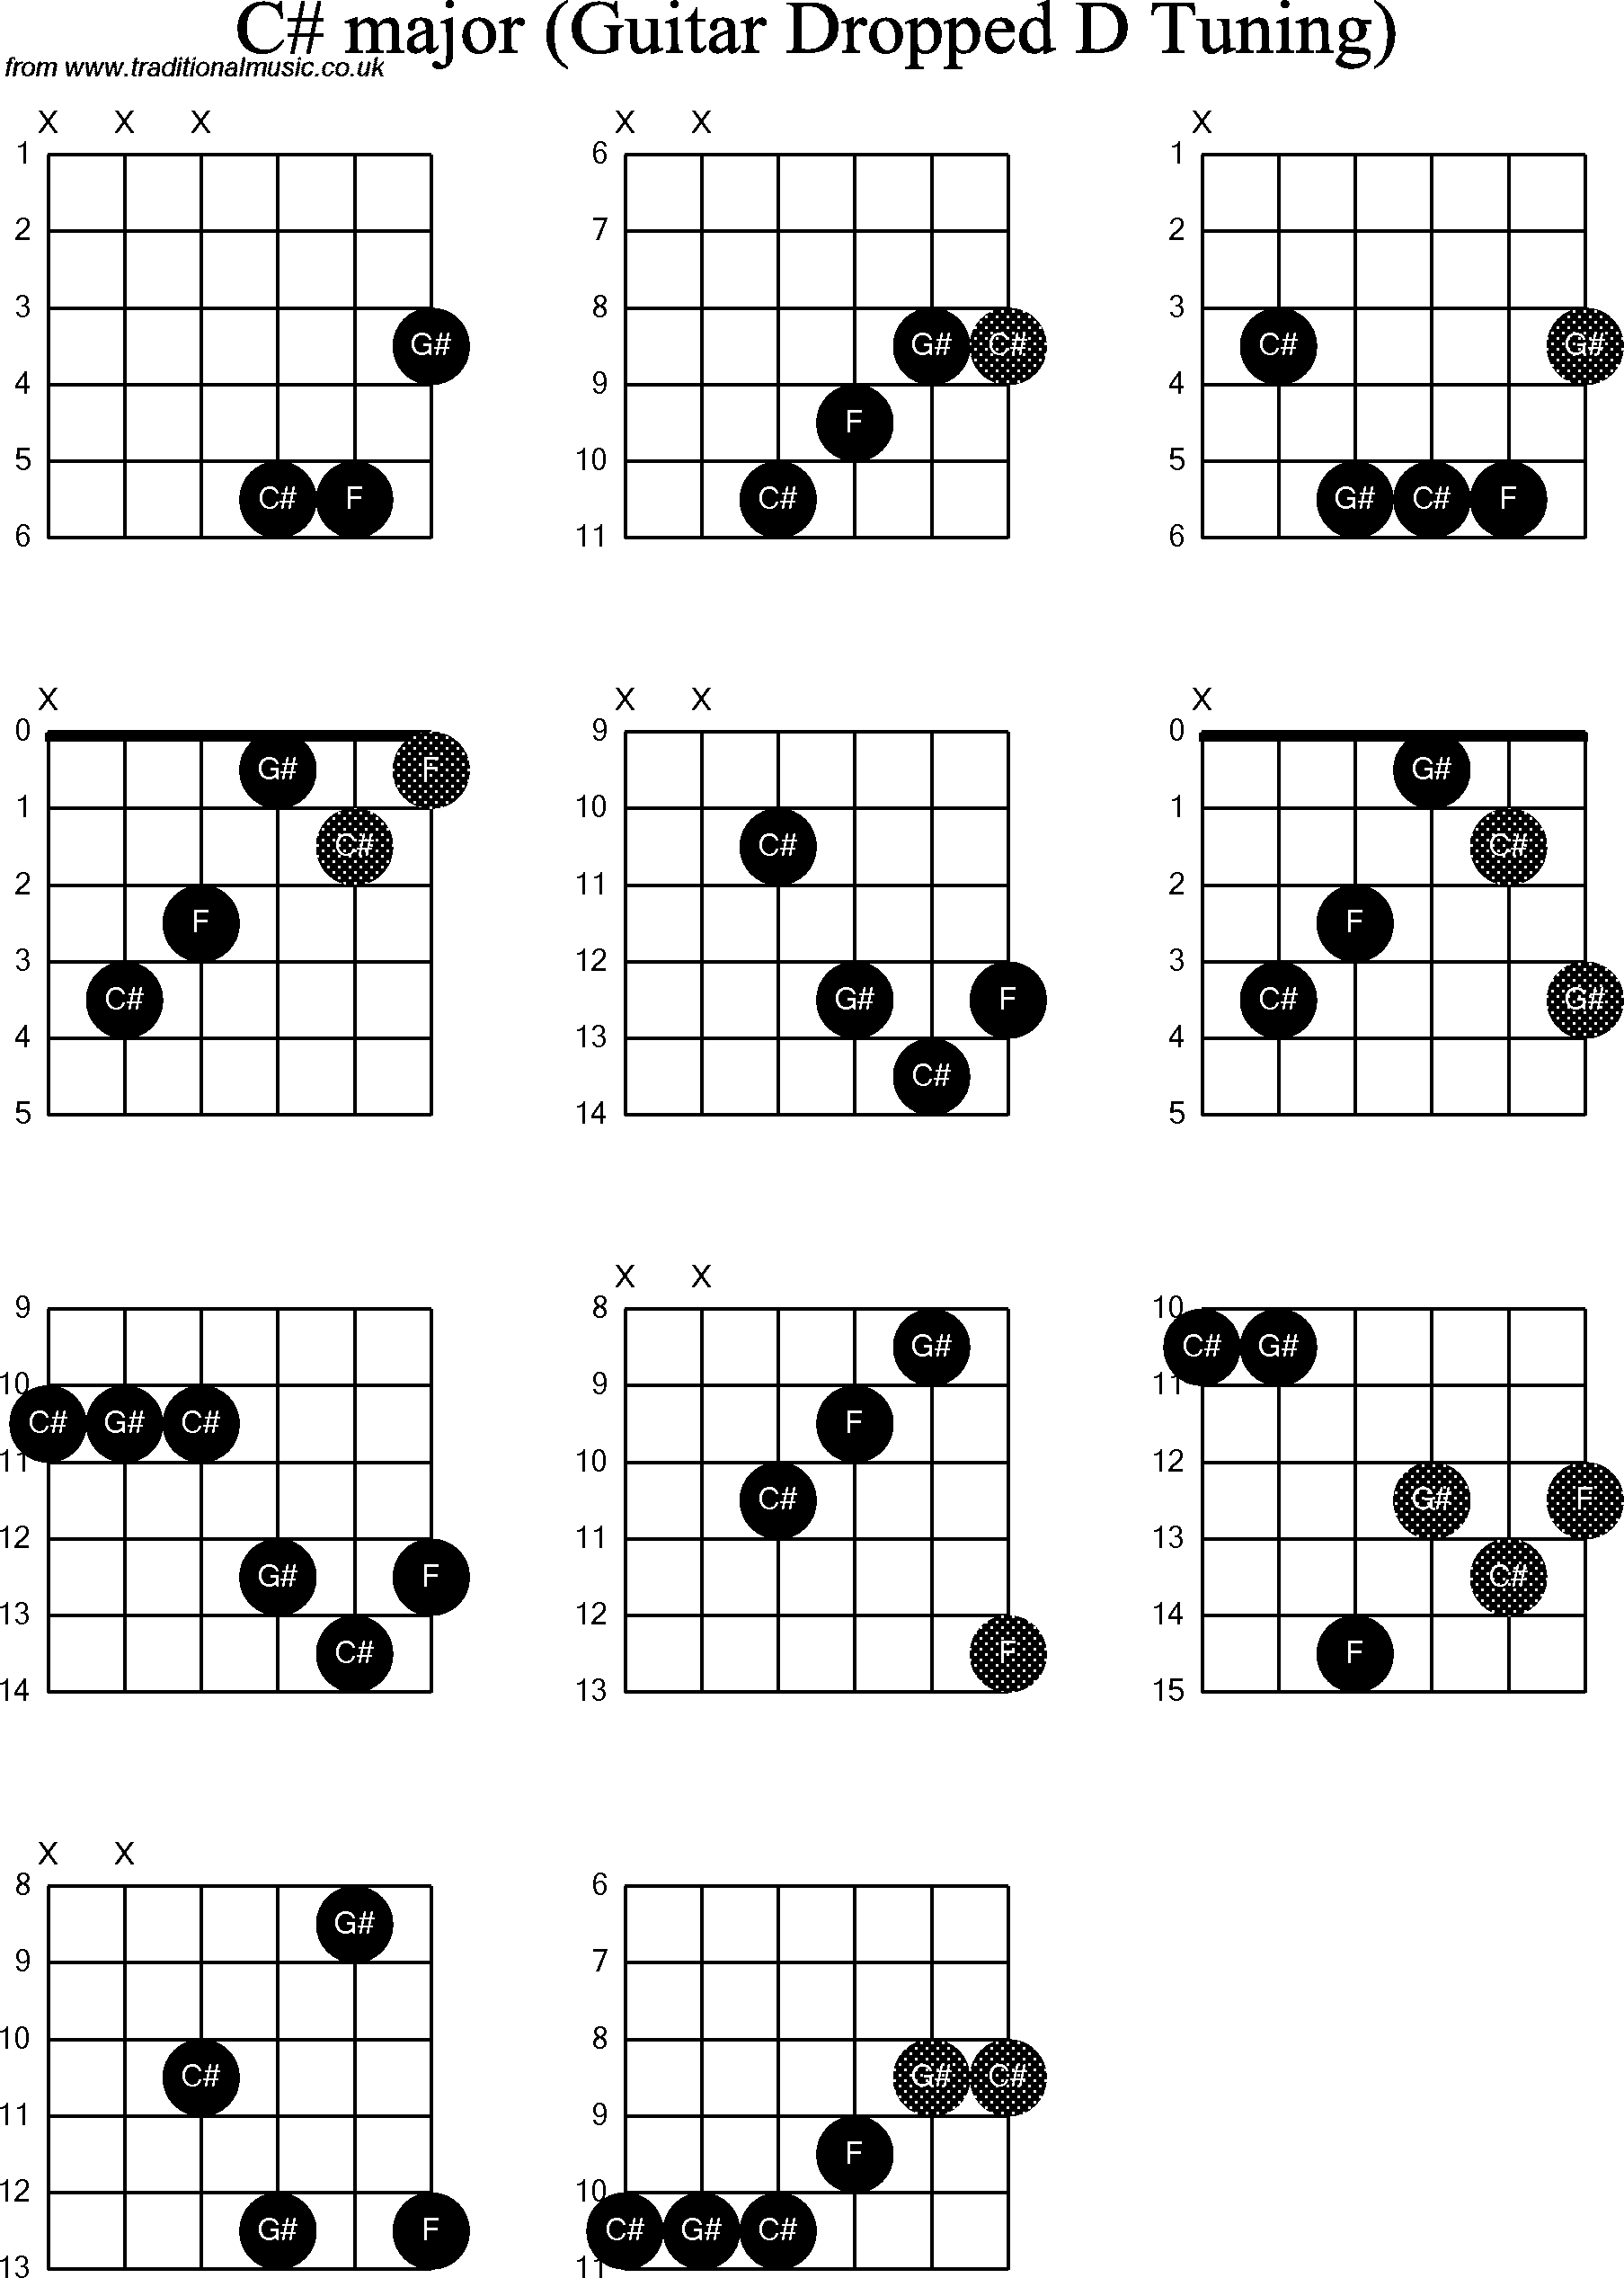 Chord Diagrams For Dropped D Guitardadgbe C Sharp